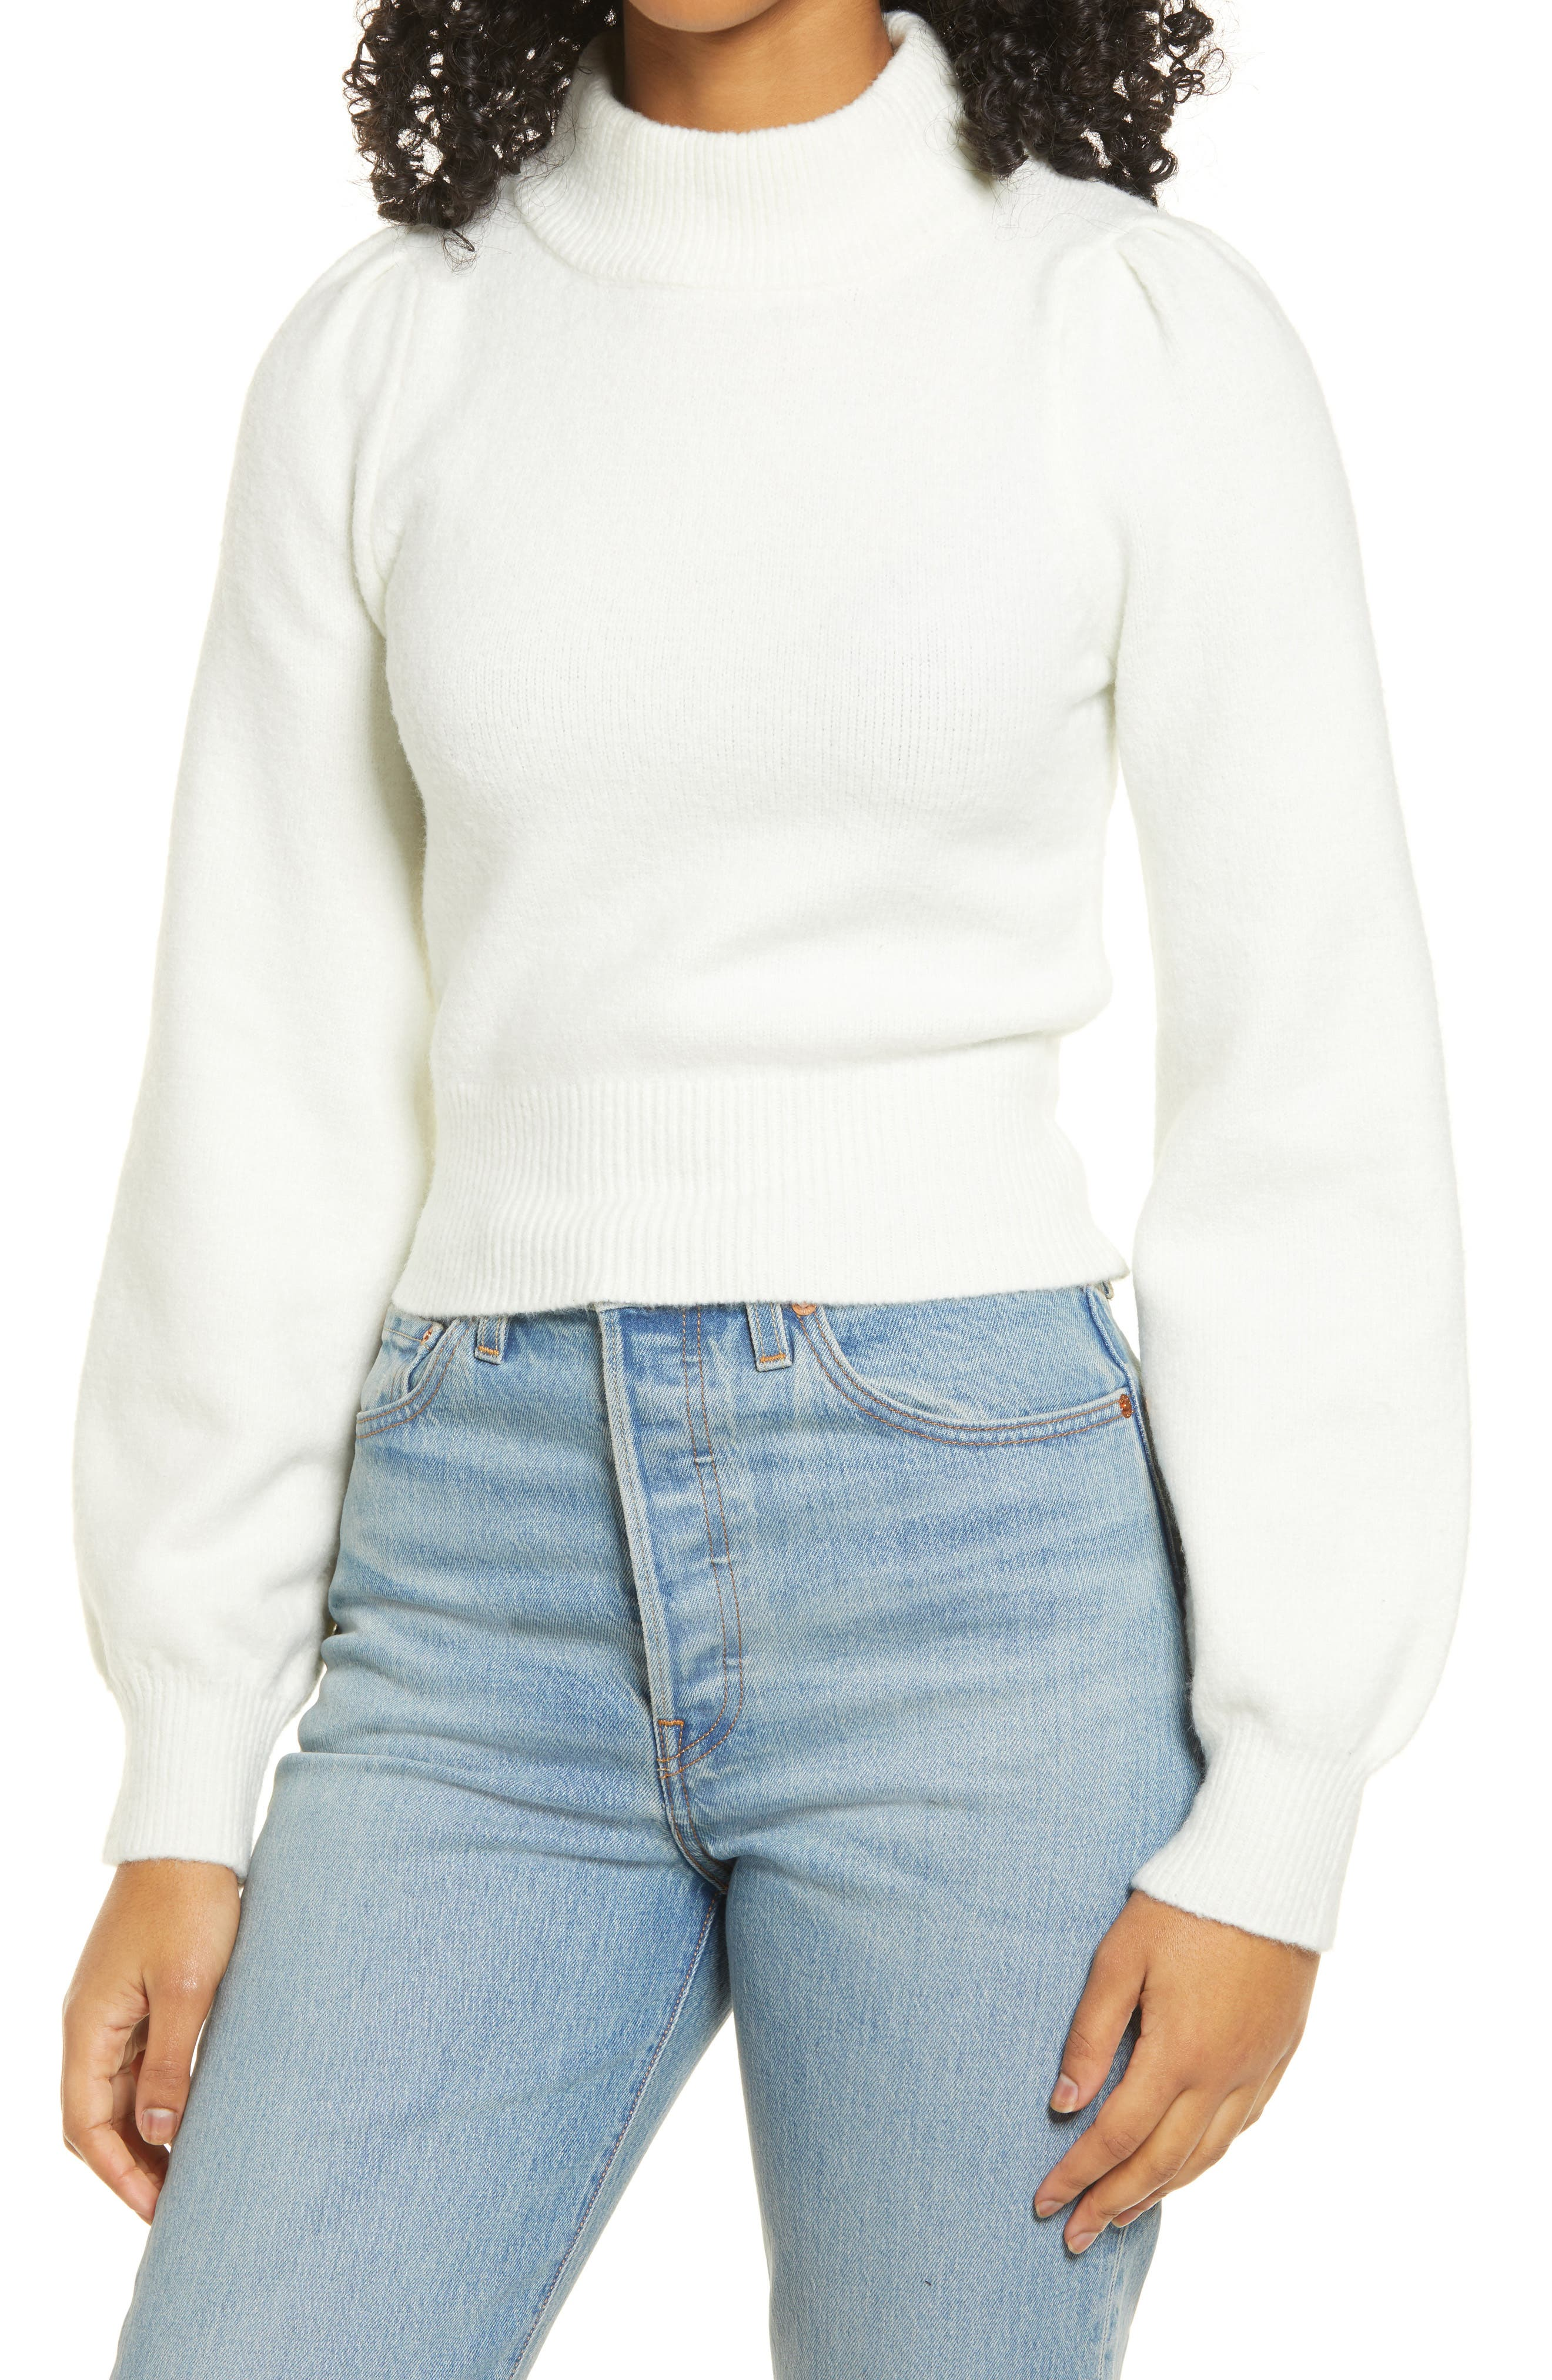 NWT Womens ONE A Ivory Key Hole Neck High Low Two Tone Sweater M